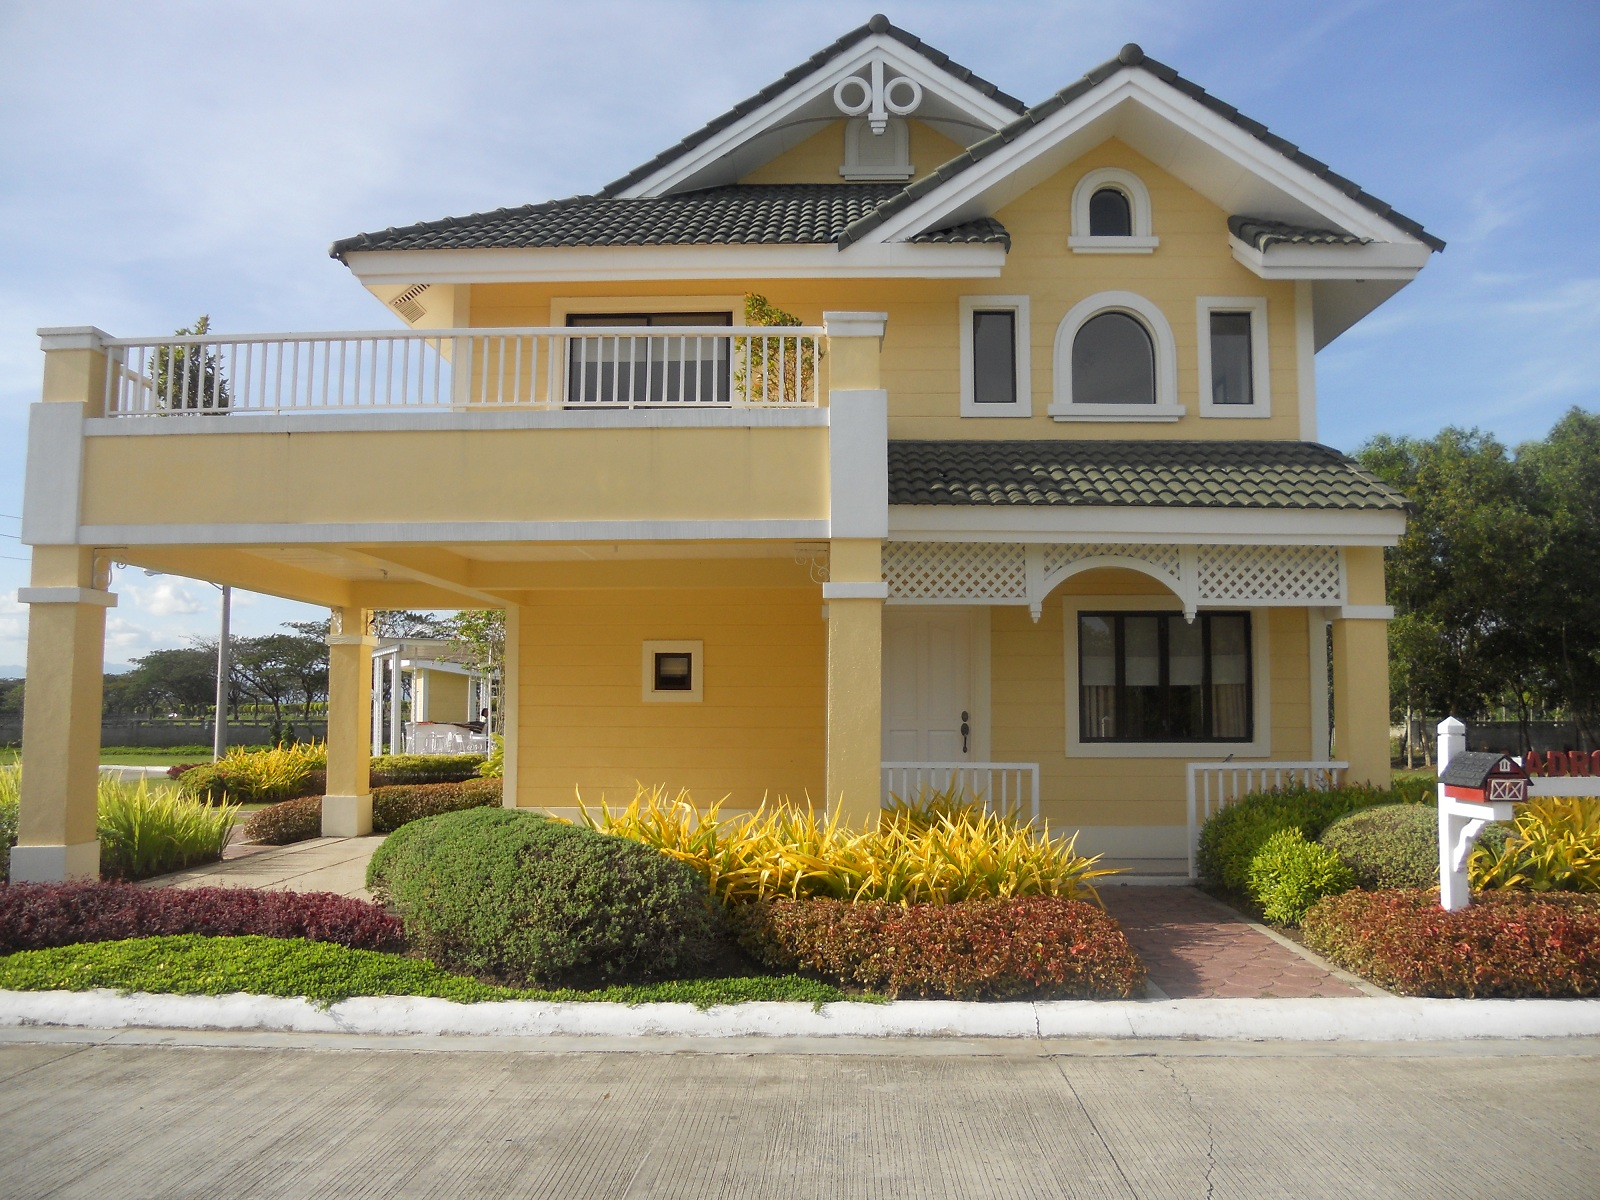 Lladro model house of savannah crest iloilo by camella for Homes models and plans